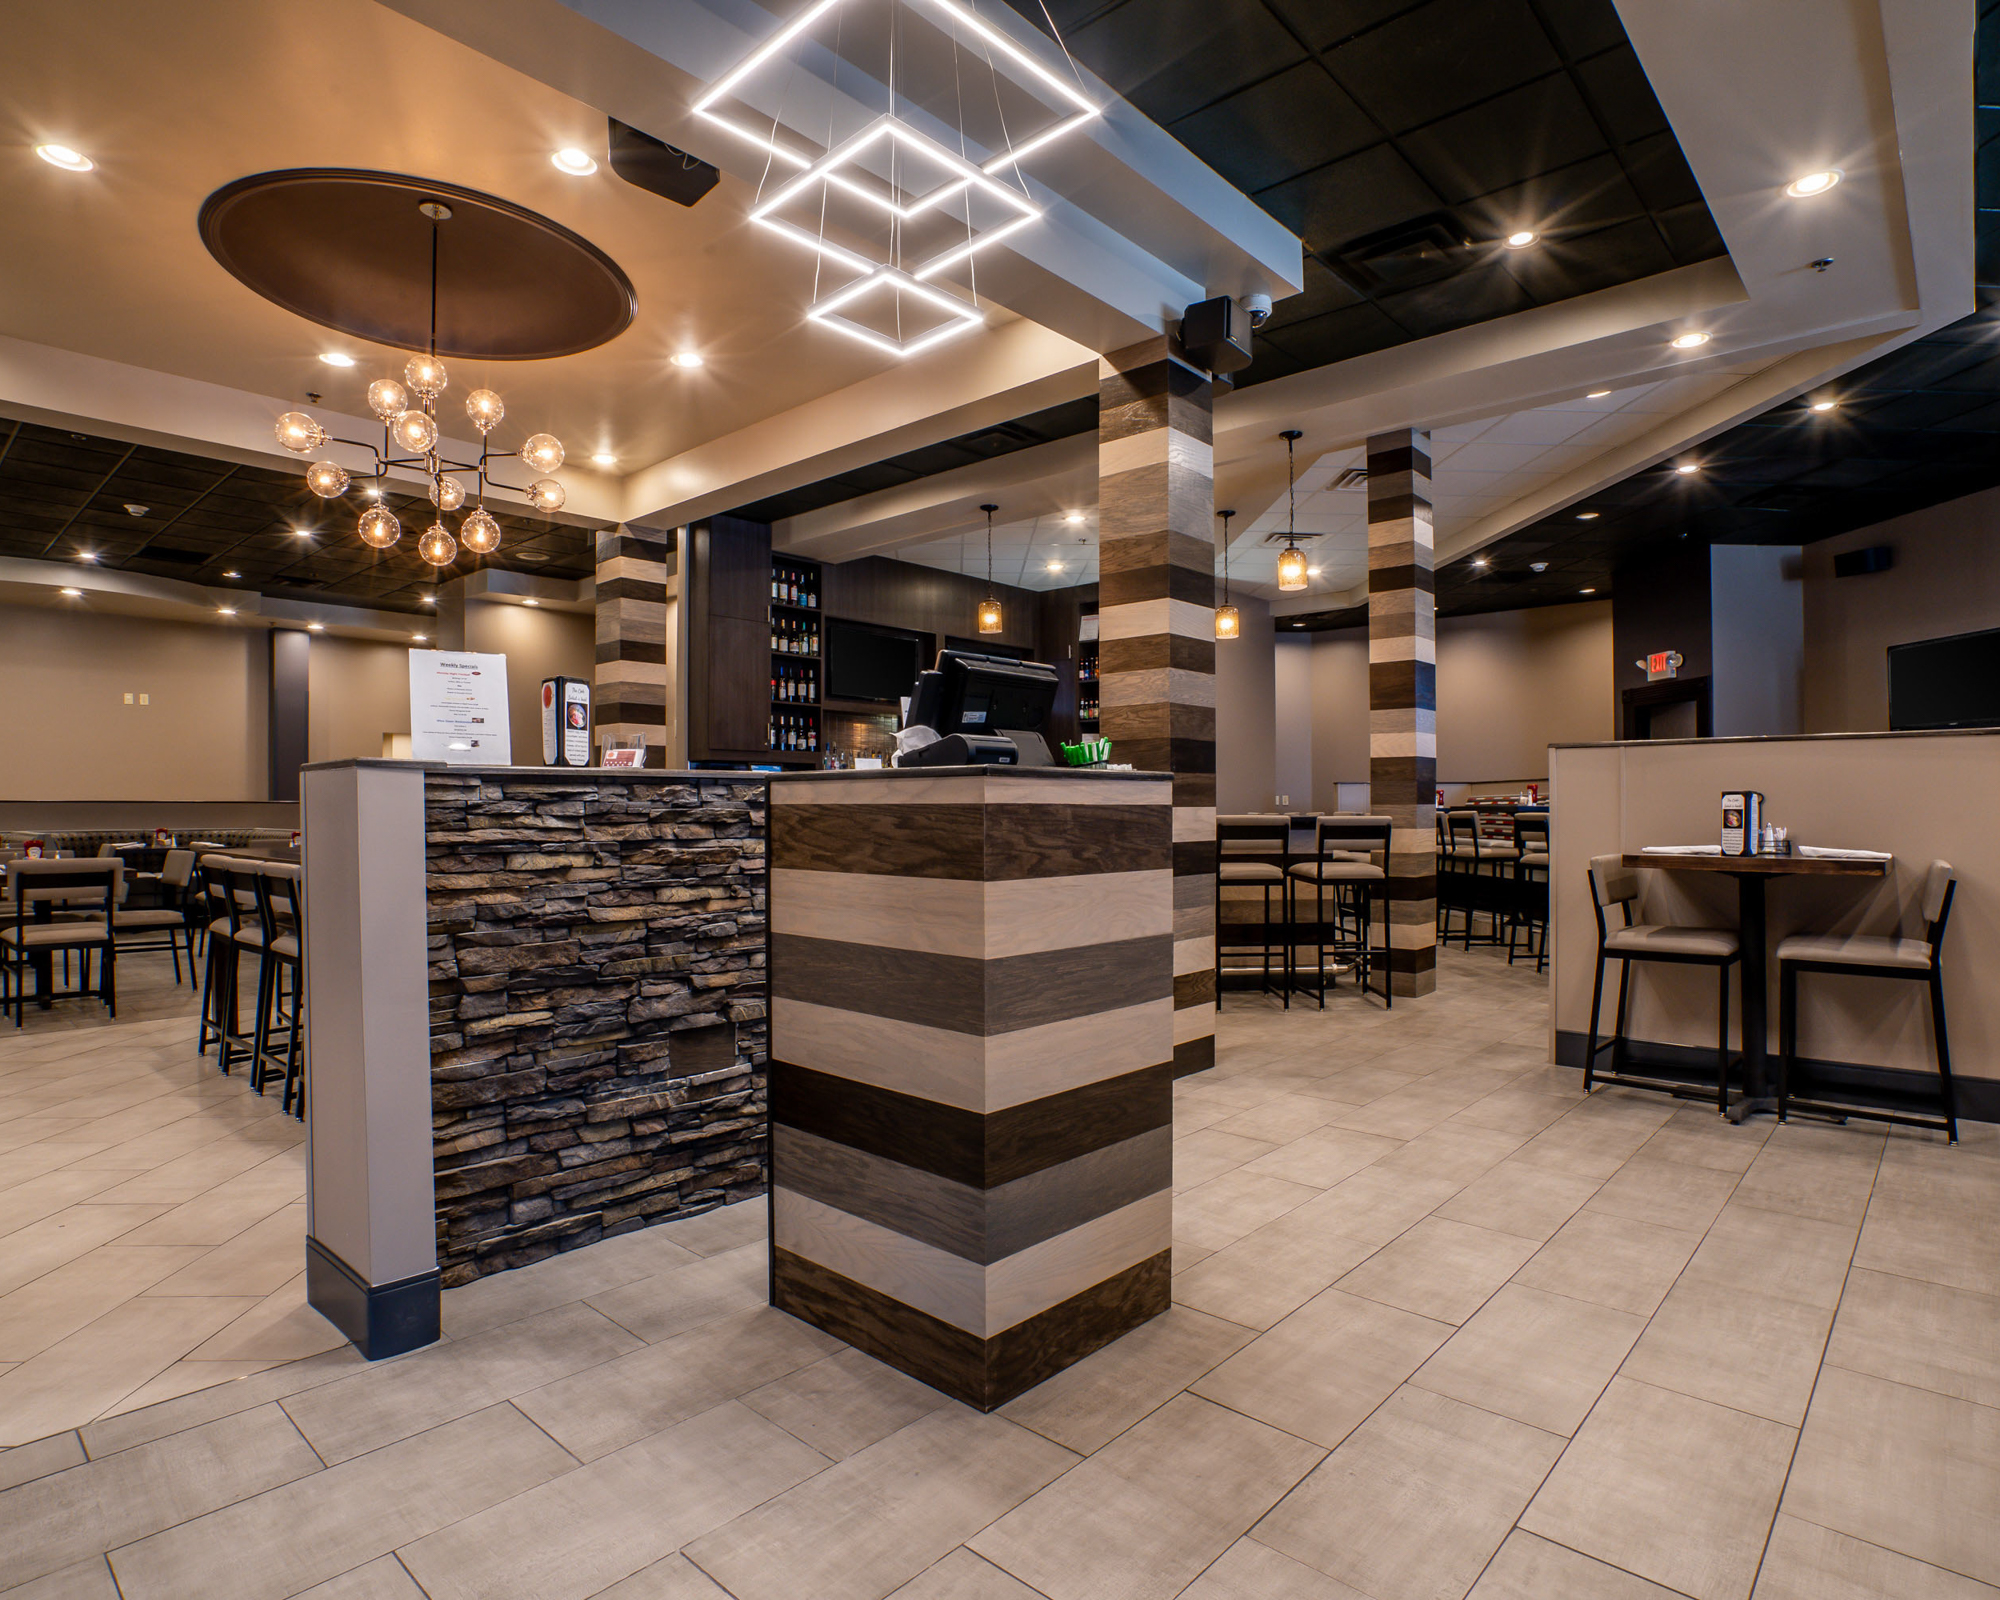 Before & After: Unveiling A Fresh New Look at The Holiday Inn